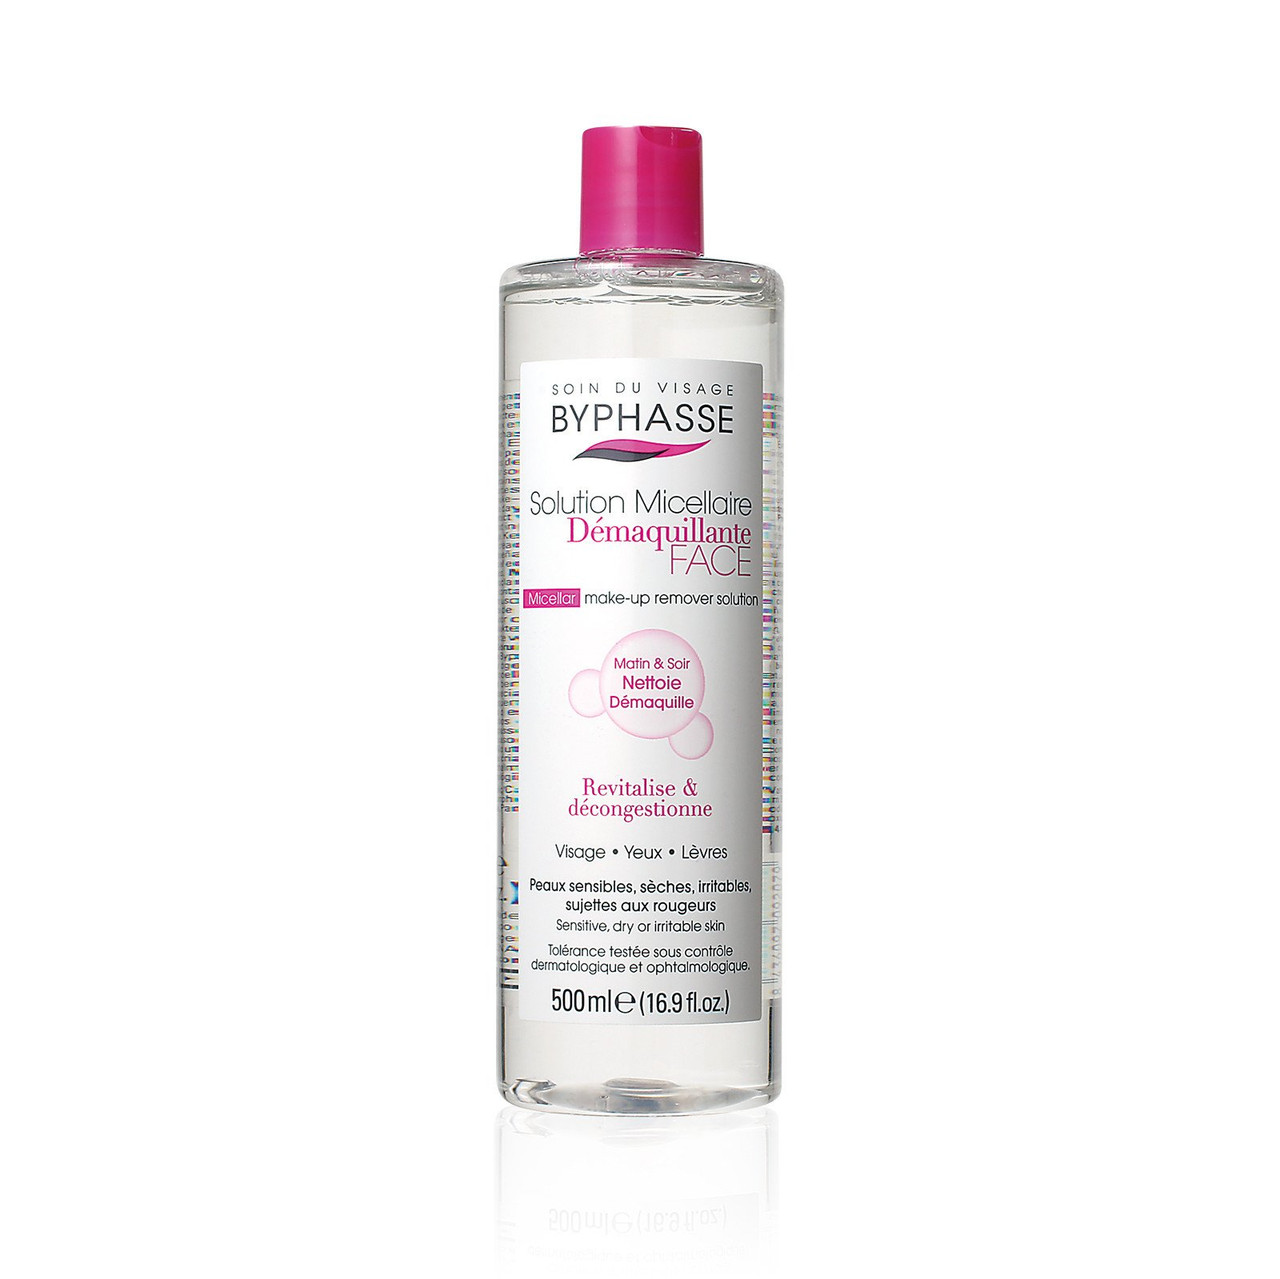 Byphasse Micellar Make-Up Remover Solution Sensitive, Dry and Irritated Skin  | Bonjour Global